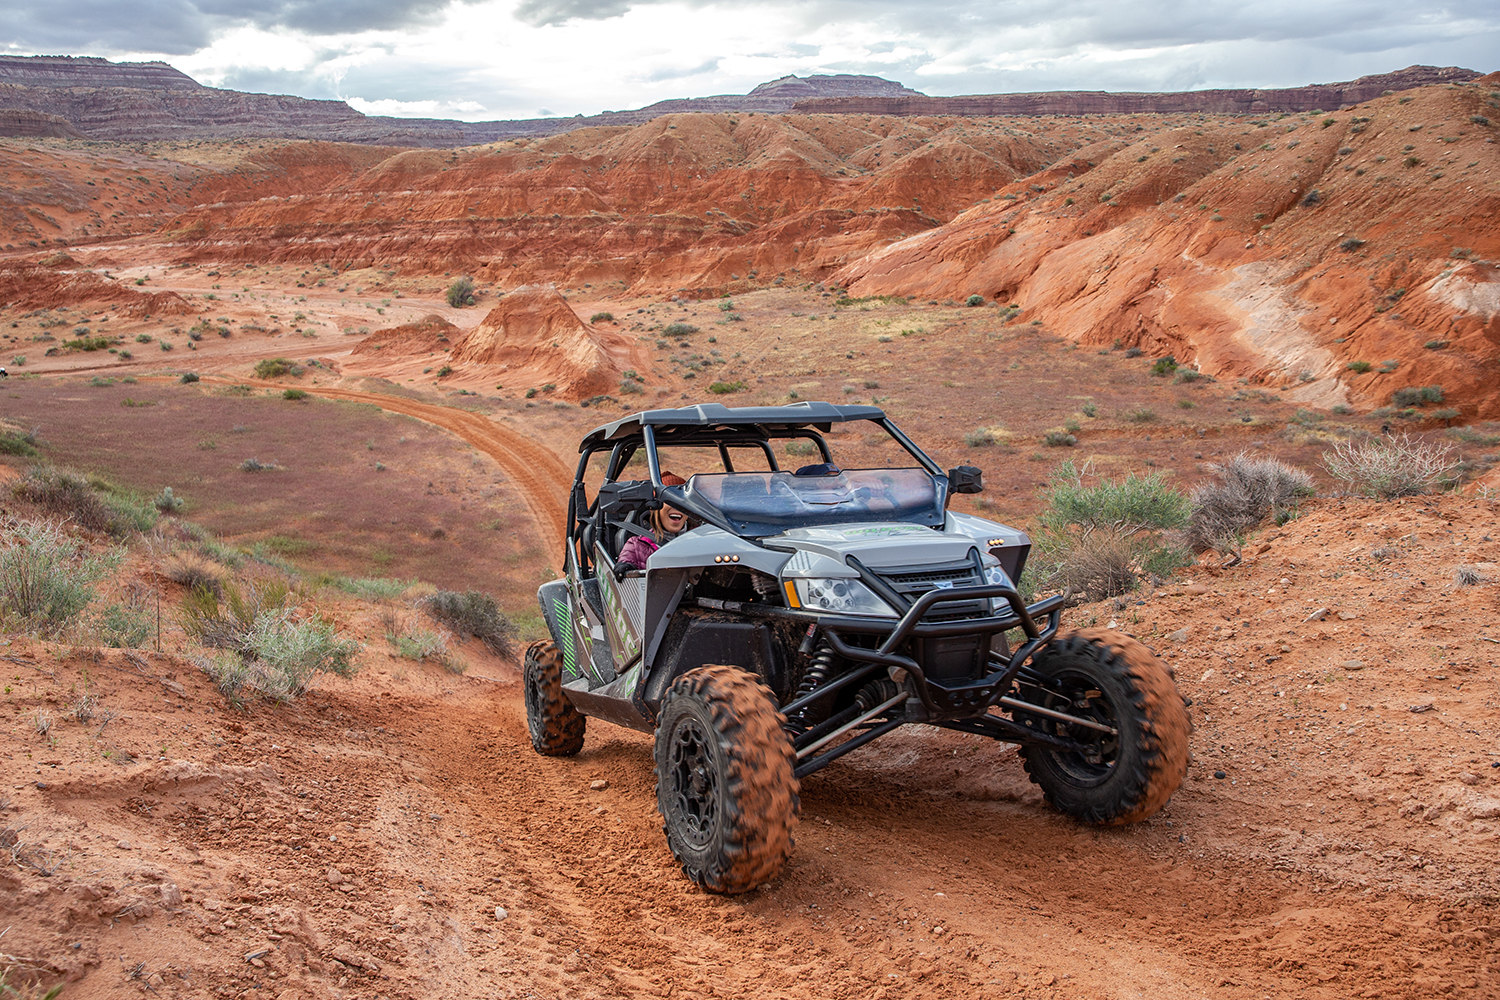 An atv trundles across an offroad trail.